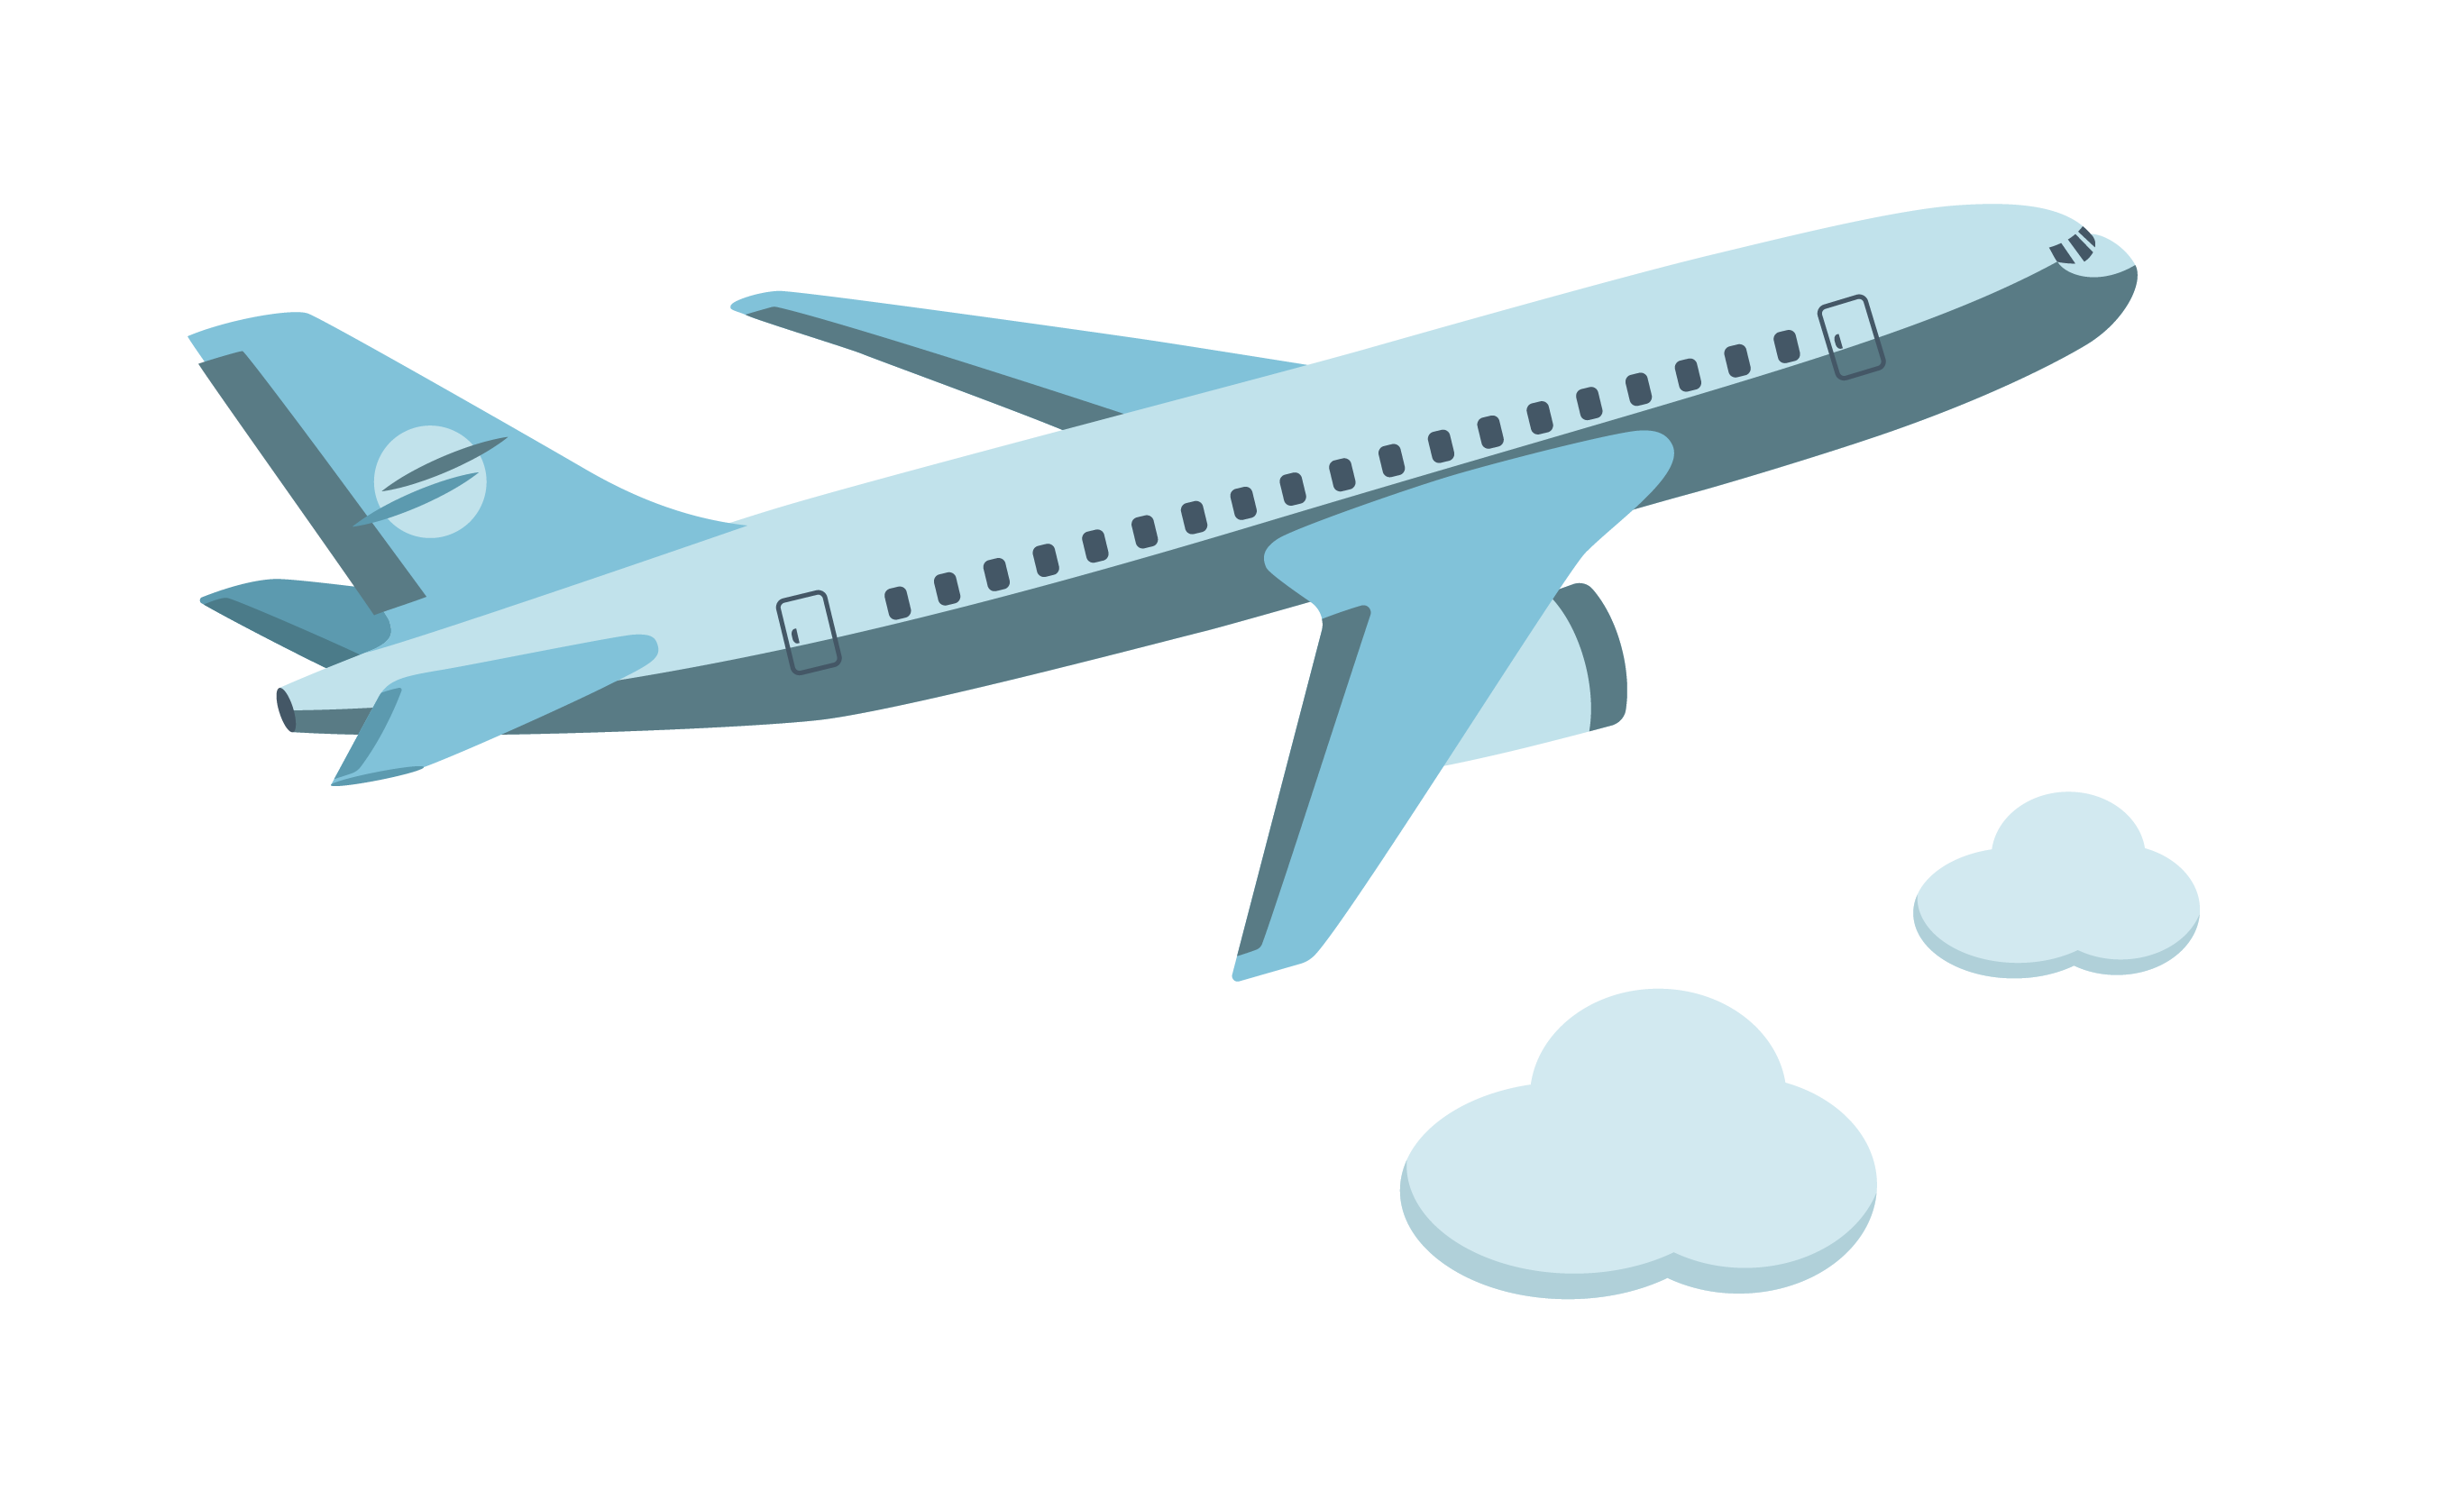 Airplane vector png. Aircraft cartoon icon flying